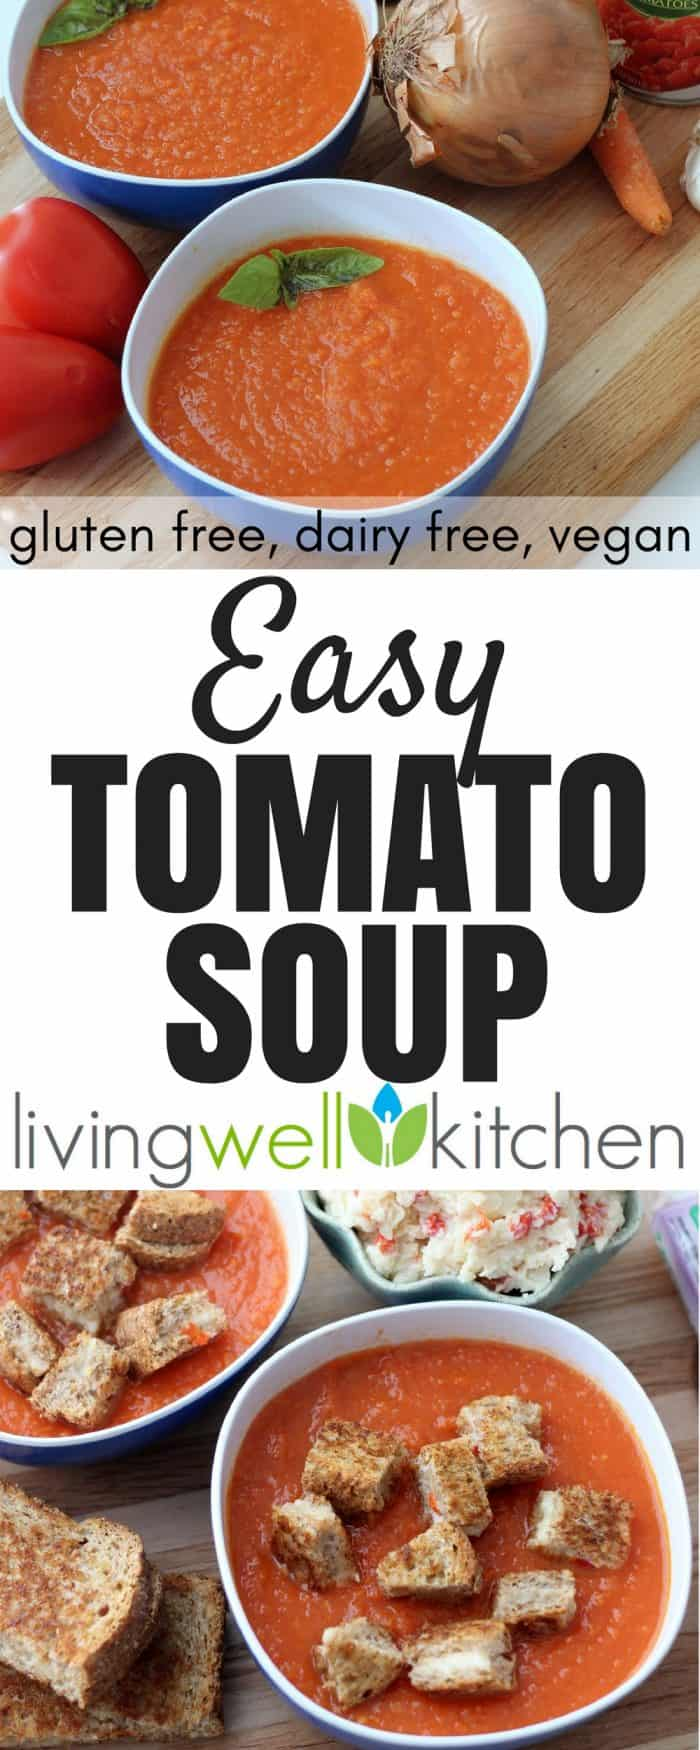 Easy Tomato Soup recipe from Living Well Kitchen is an easy to make tomato soup that only requires a few ingredients you likely already have in your kitchen. Gluten free, dairy free, vegan